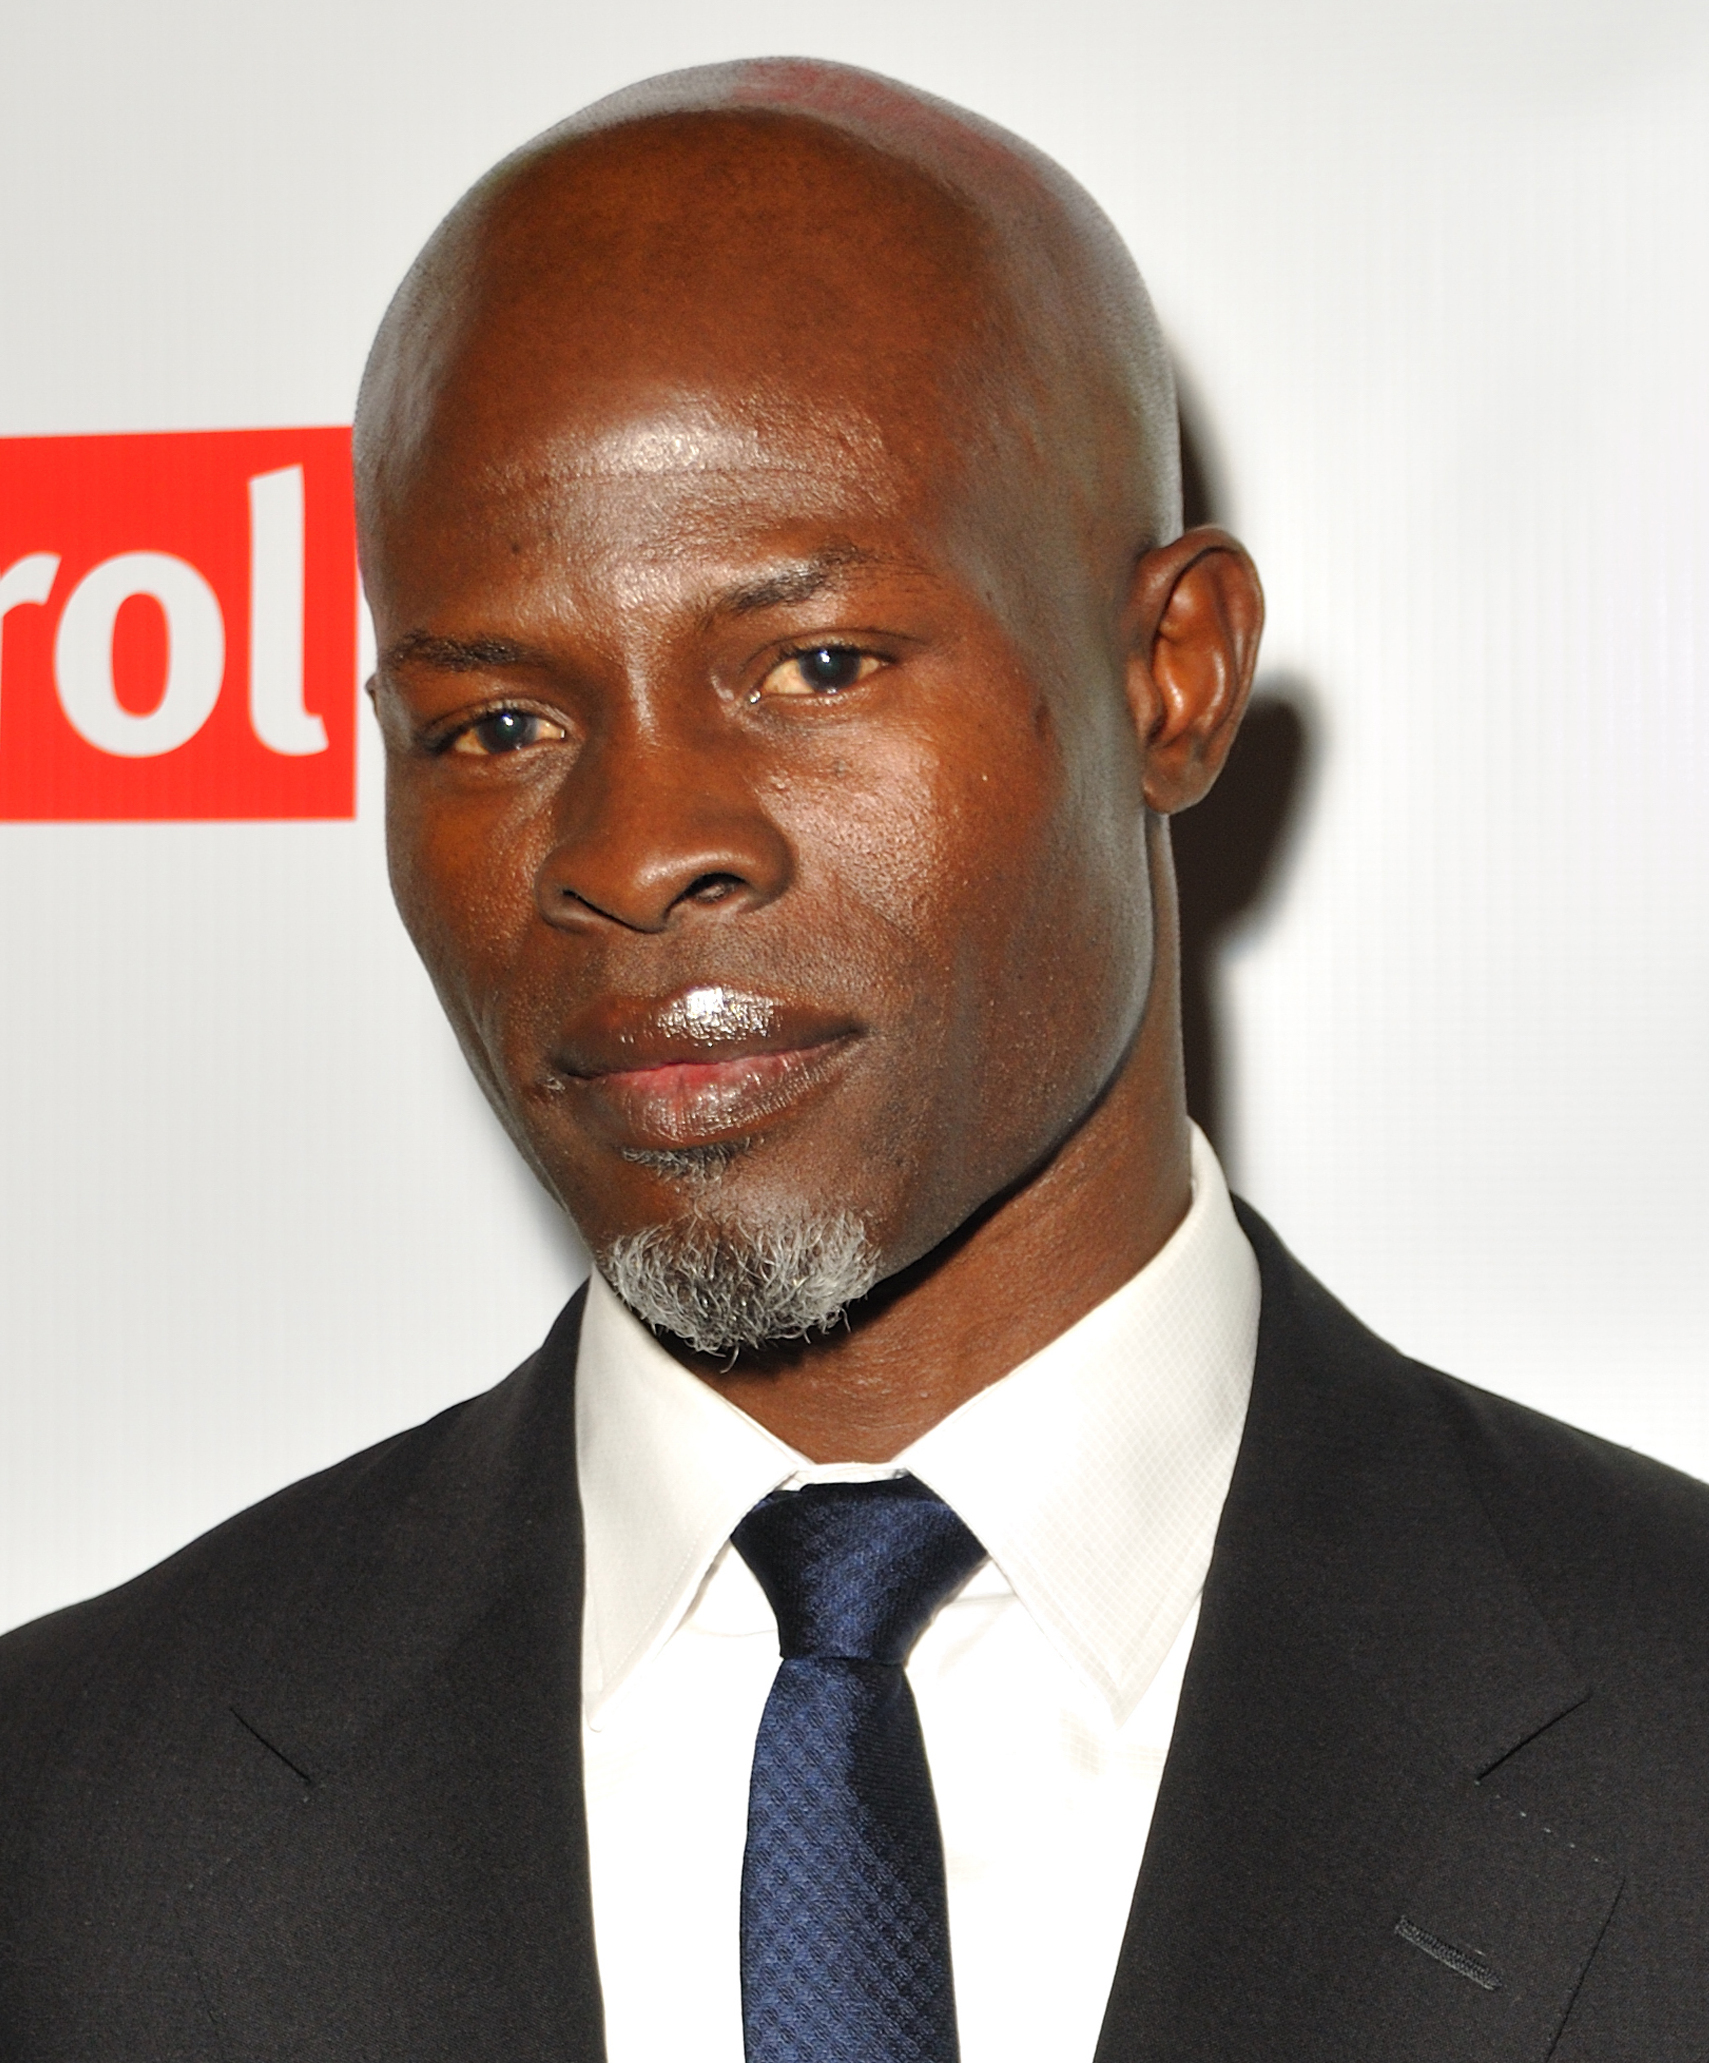 Djimon Hounsou 2019 Kahl Haar & Alternative Haarstil.